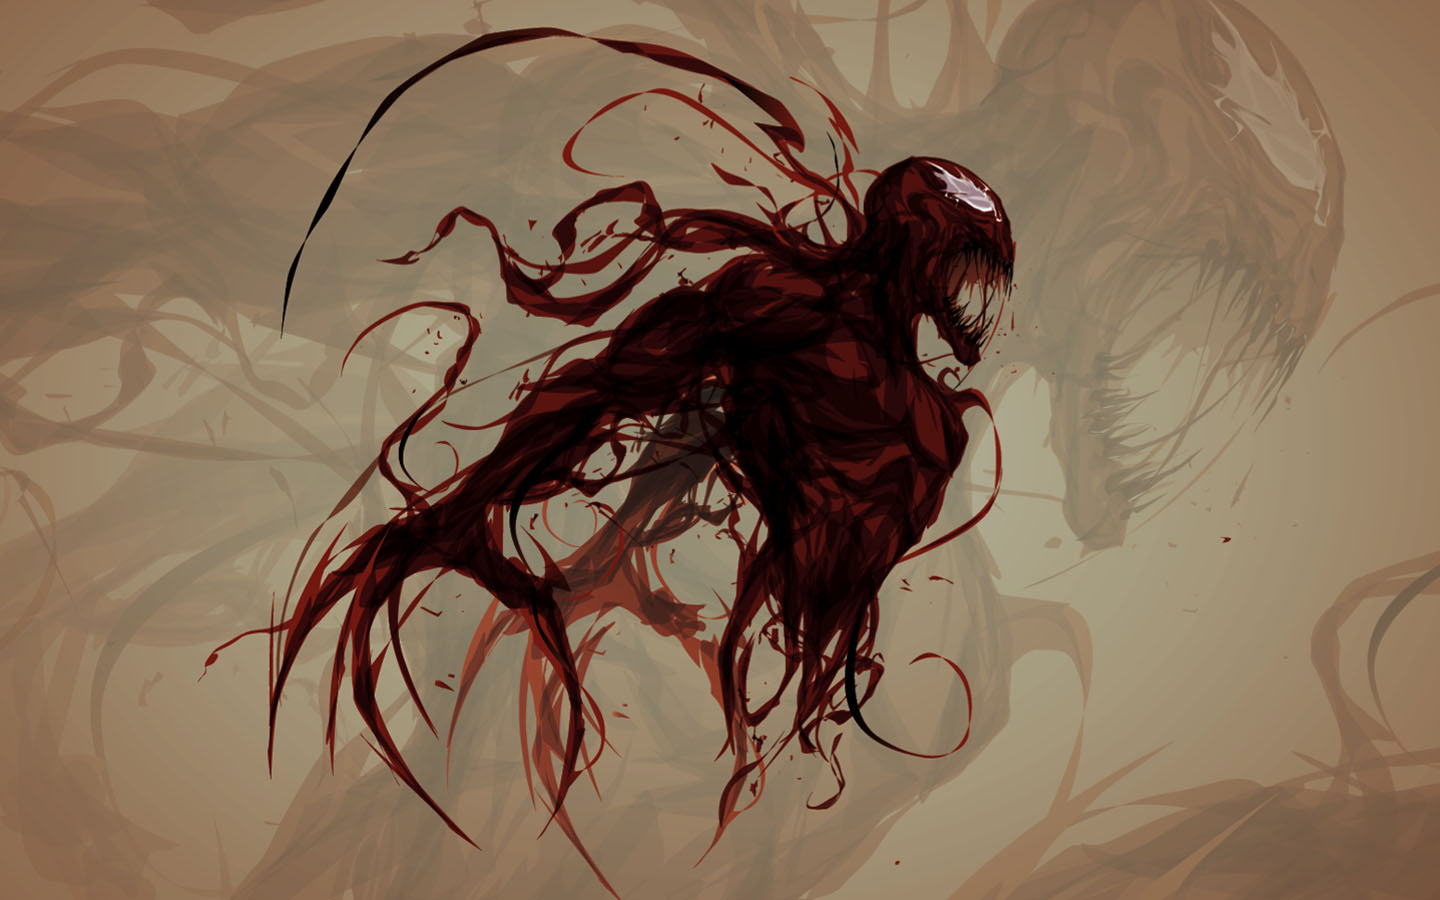 dr thedas crypt as requested carnage